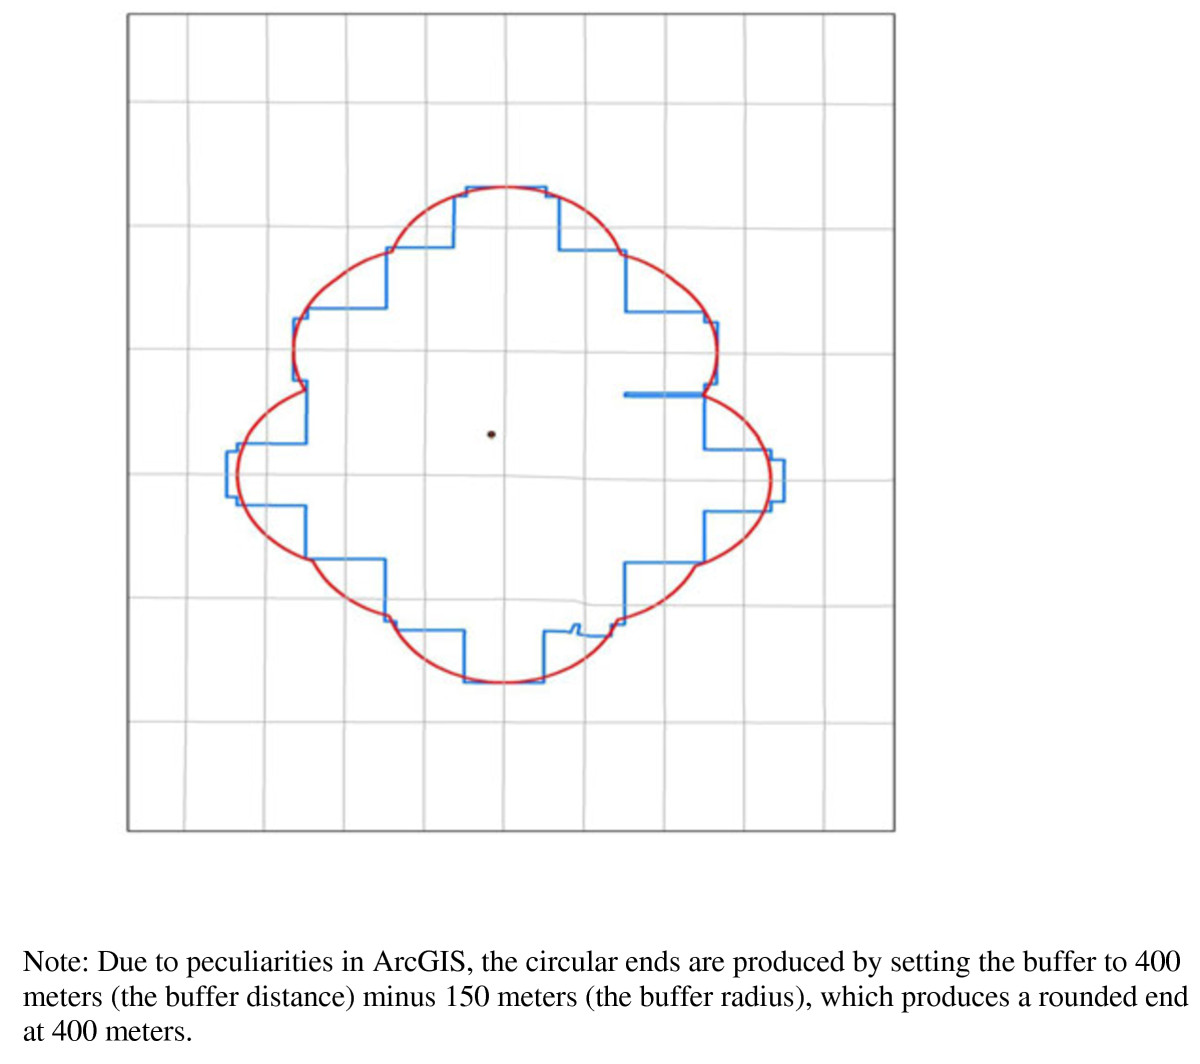 http://static-content.springer.com/image/art%3A10.1186%2F1476-072X-11-14/MediaObjects/12942_2012_Article_475_Fig3_HTML.jpg